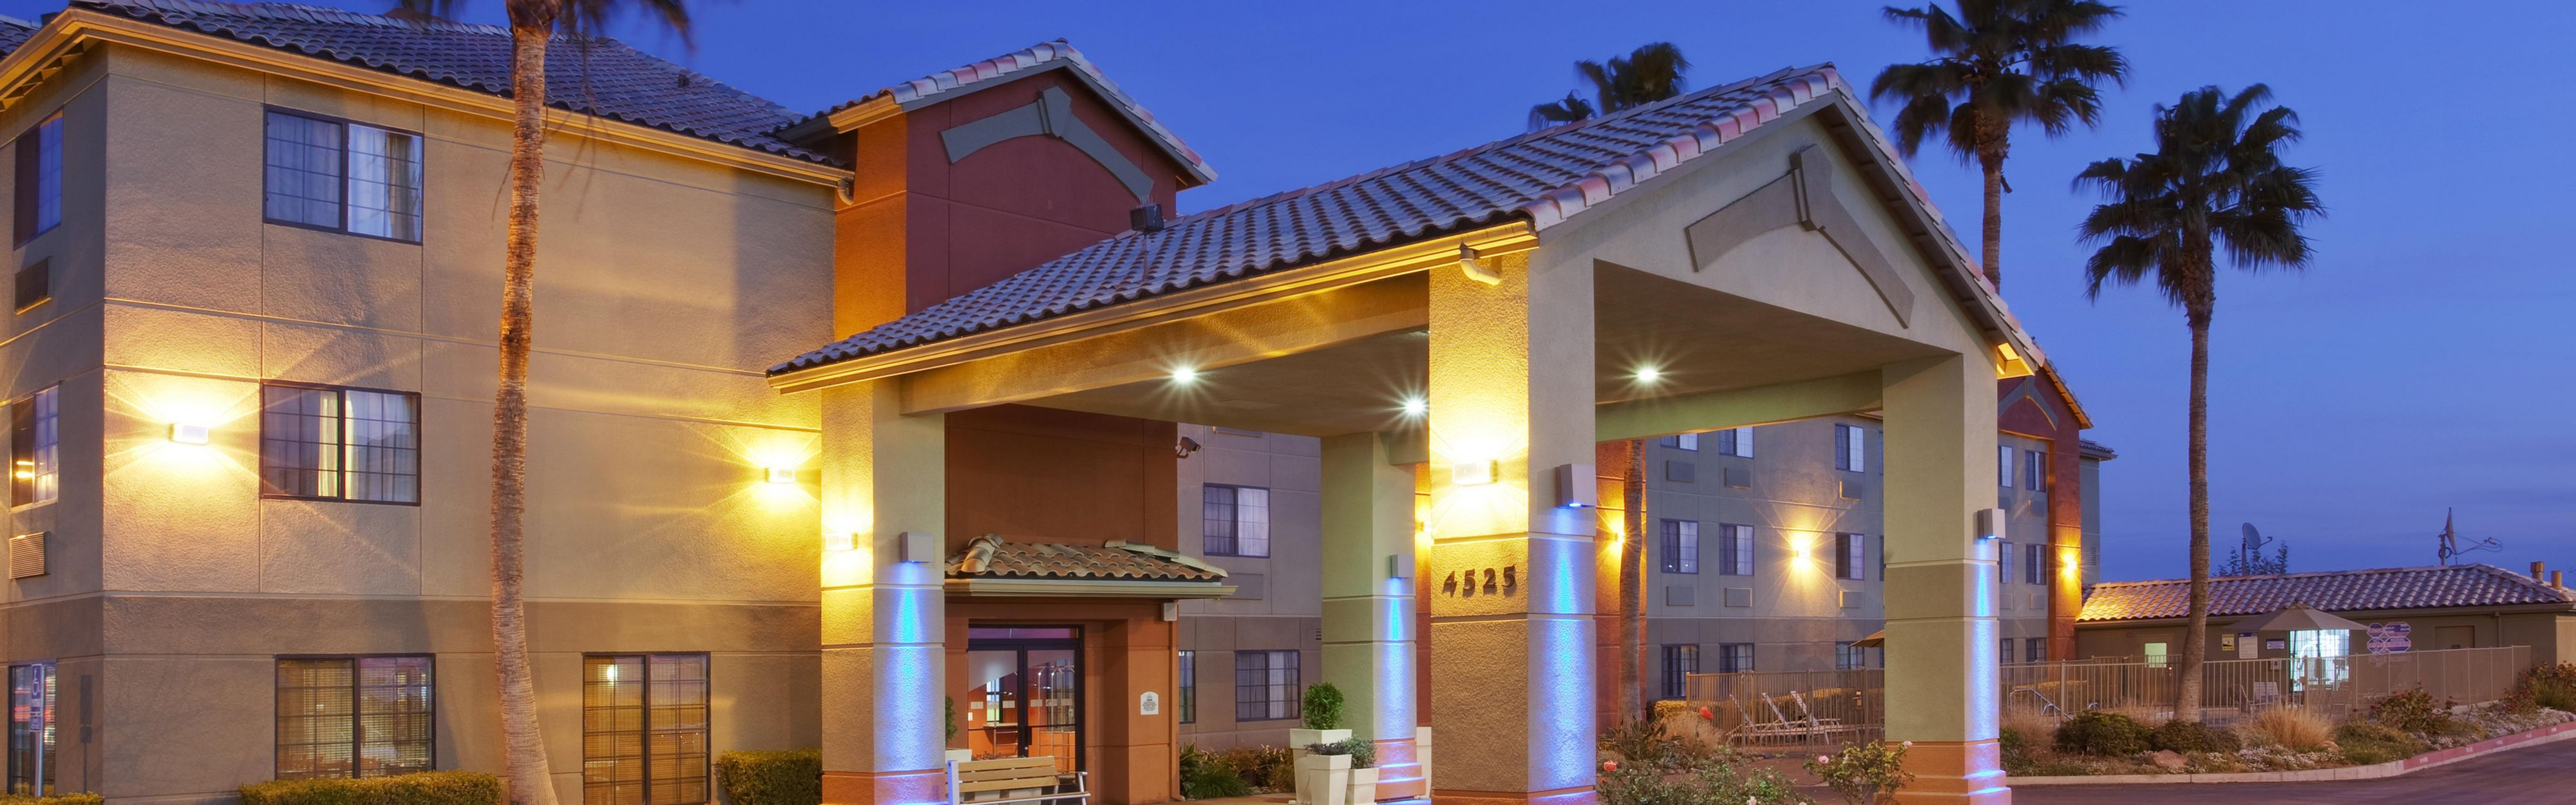 Holiday Inn Express Westley North- Patterson Area image 0